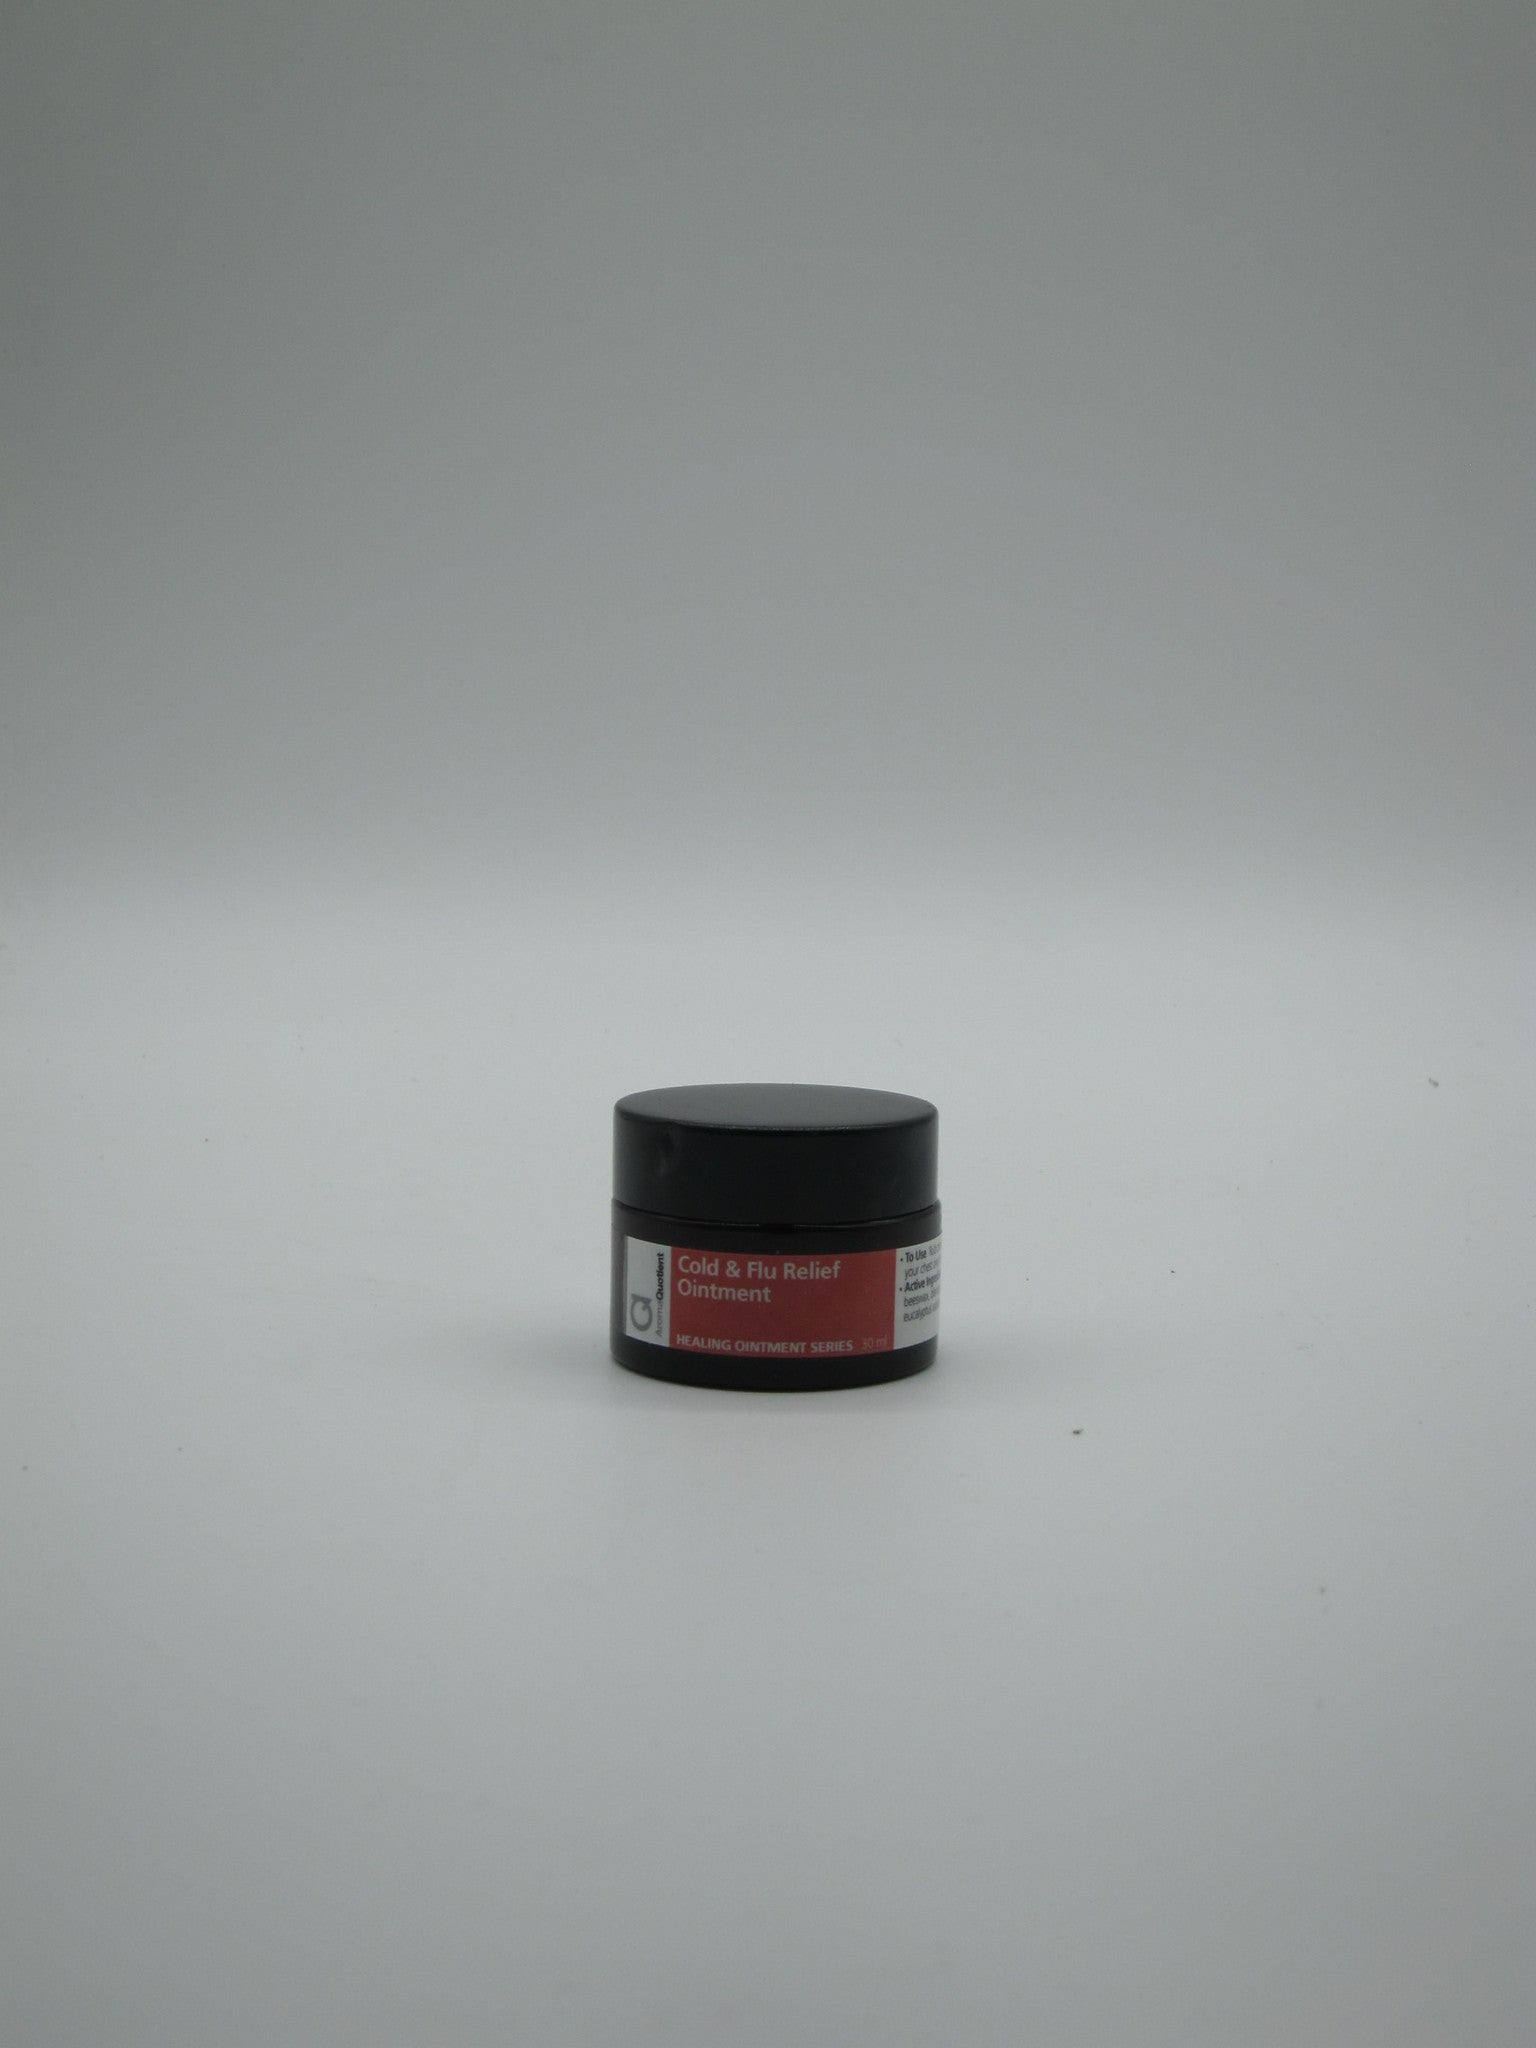 Cold & Flu Relief Ointment - 30g